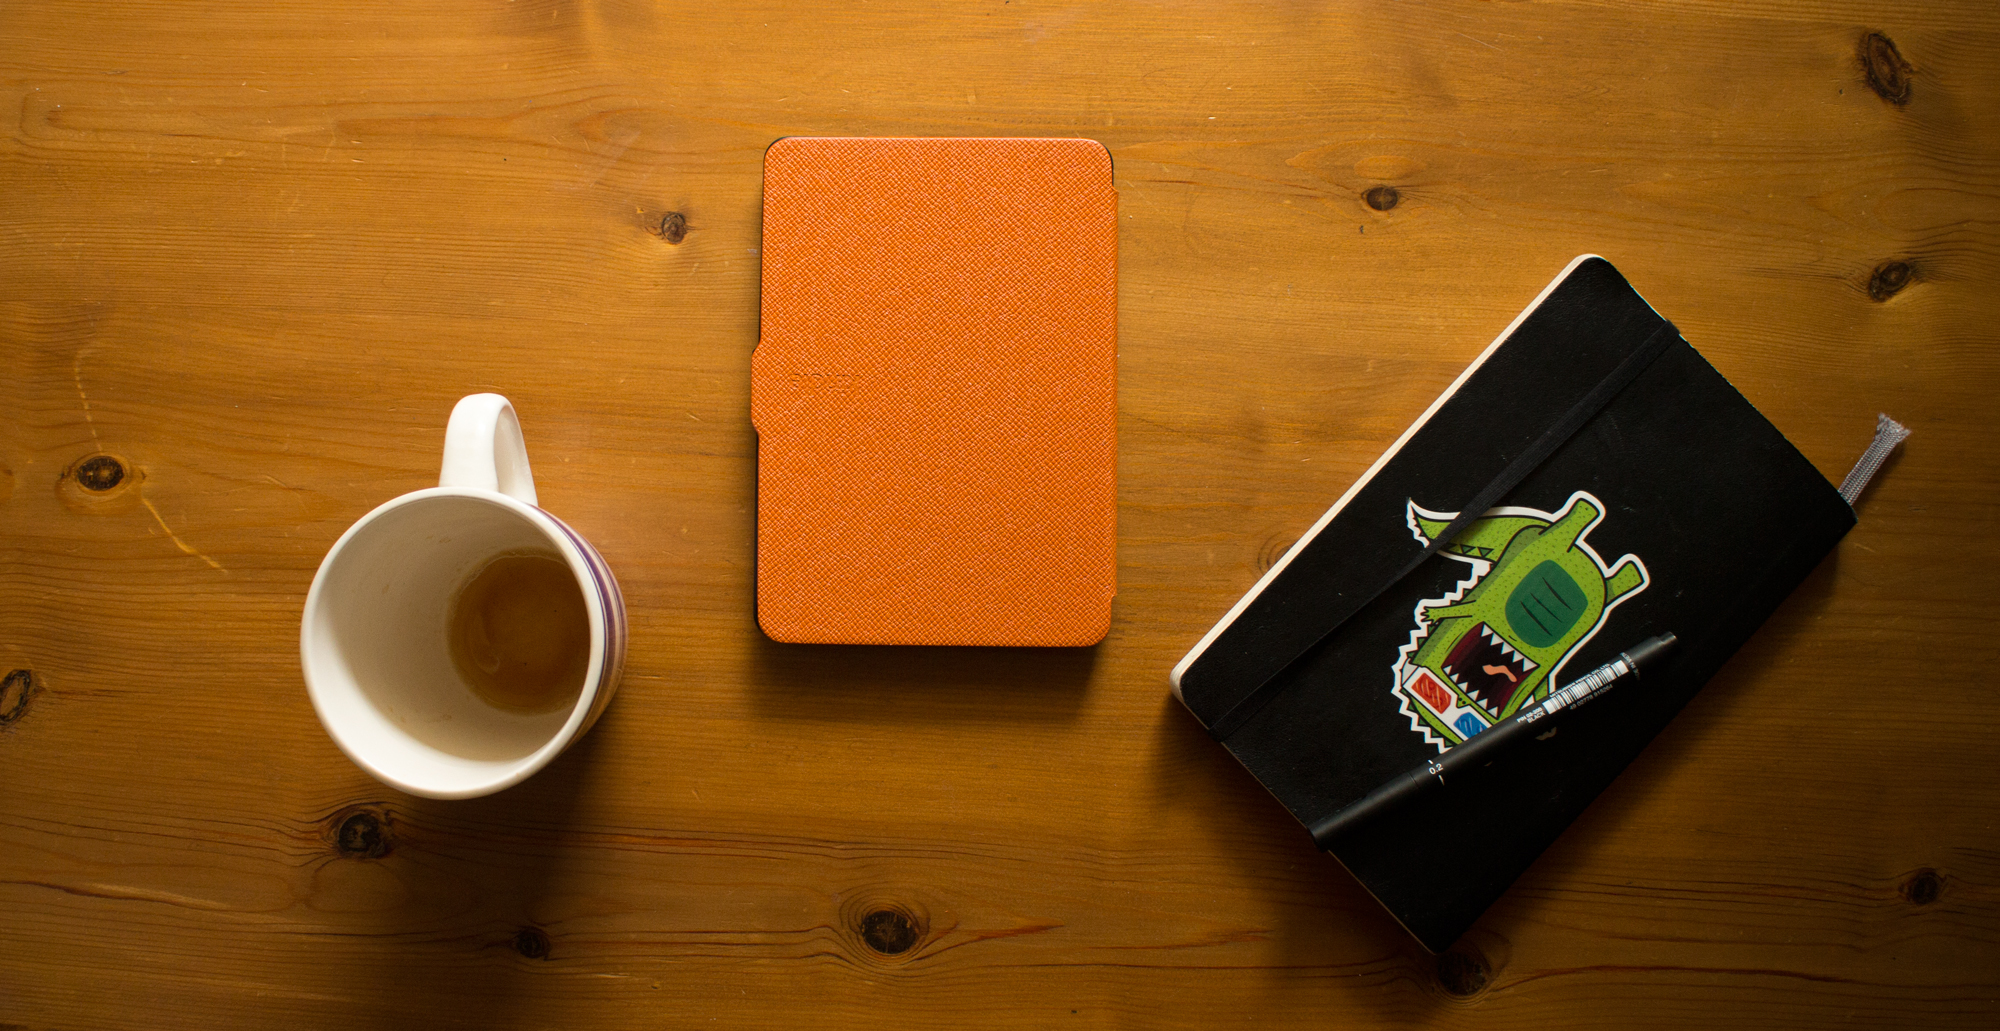 HOW SWITCHING FROM PAPER TO KINDLE CHANGED MY PERSPECTIVE ON READING.